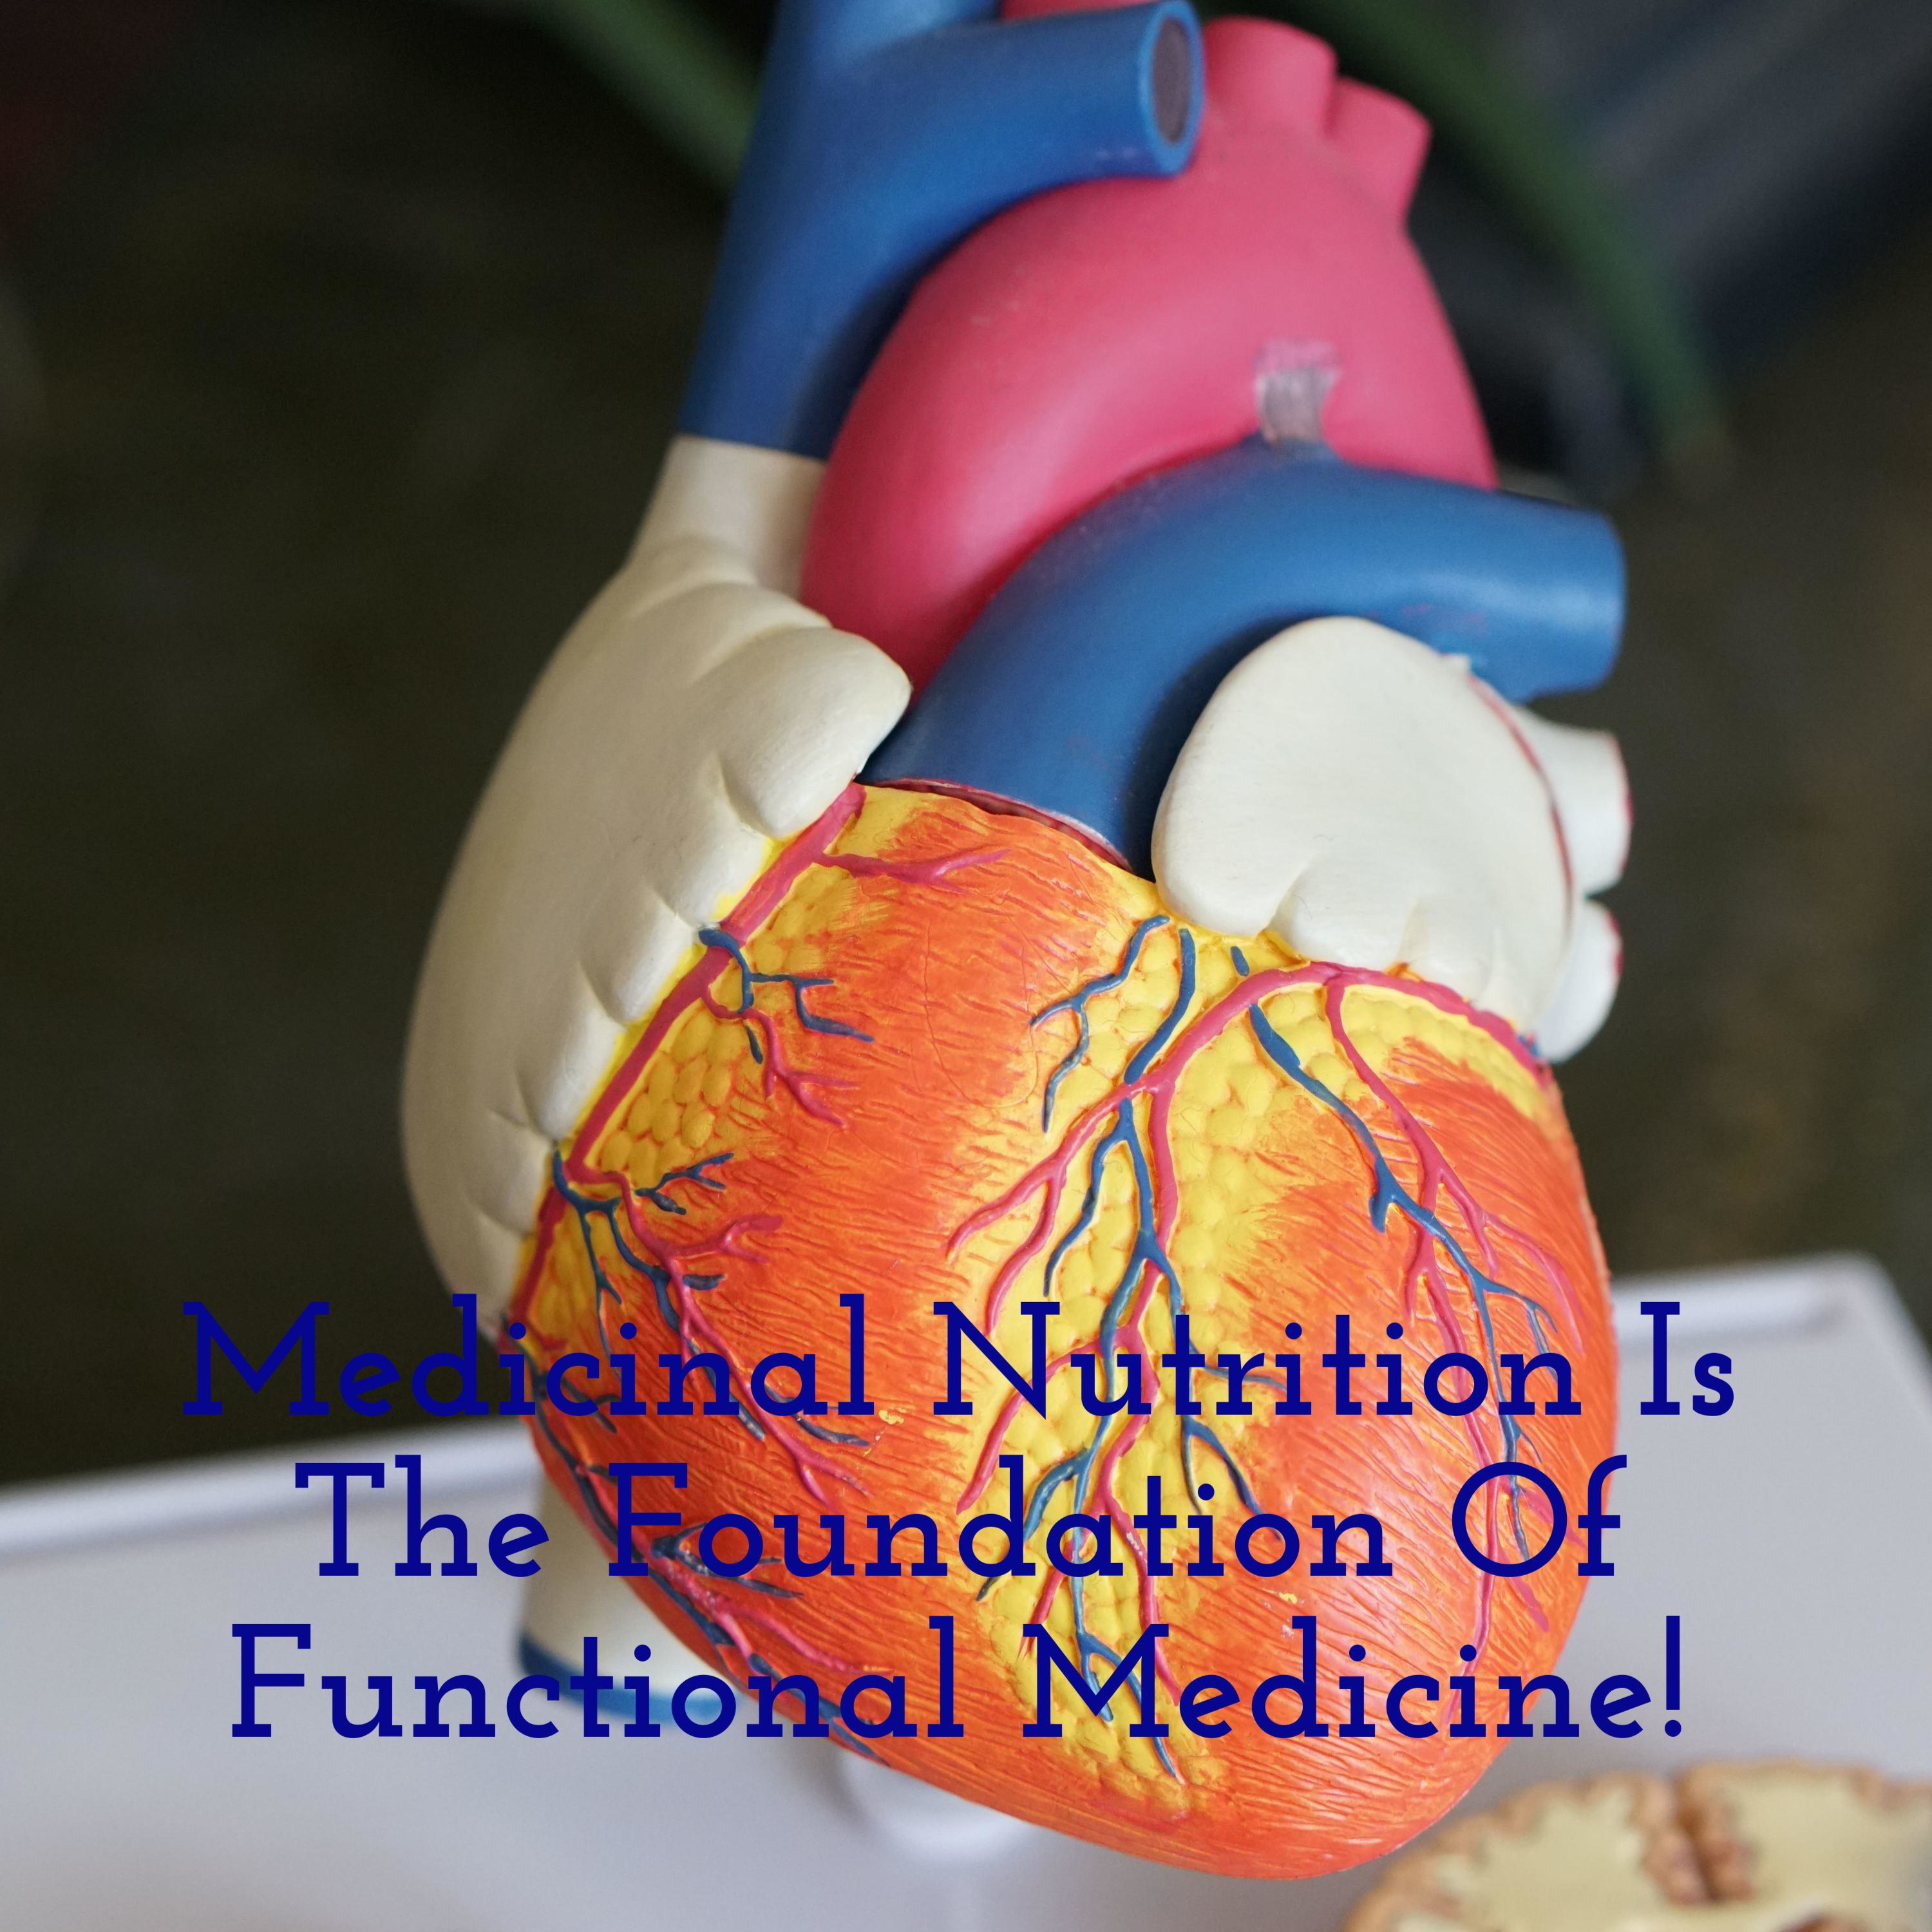 Medicinal Nutrition Is The Foundation Of Functional Medicine!